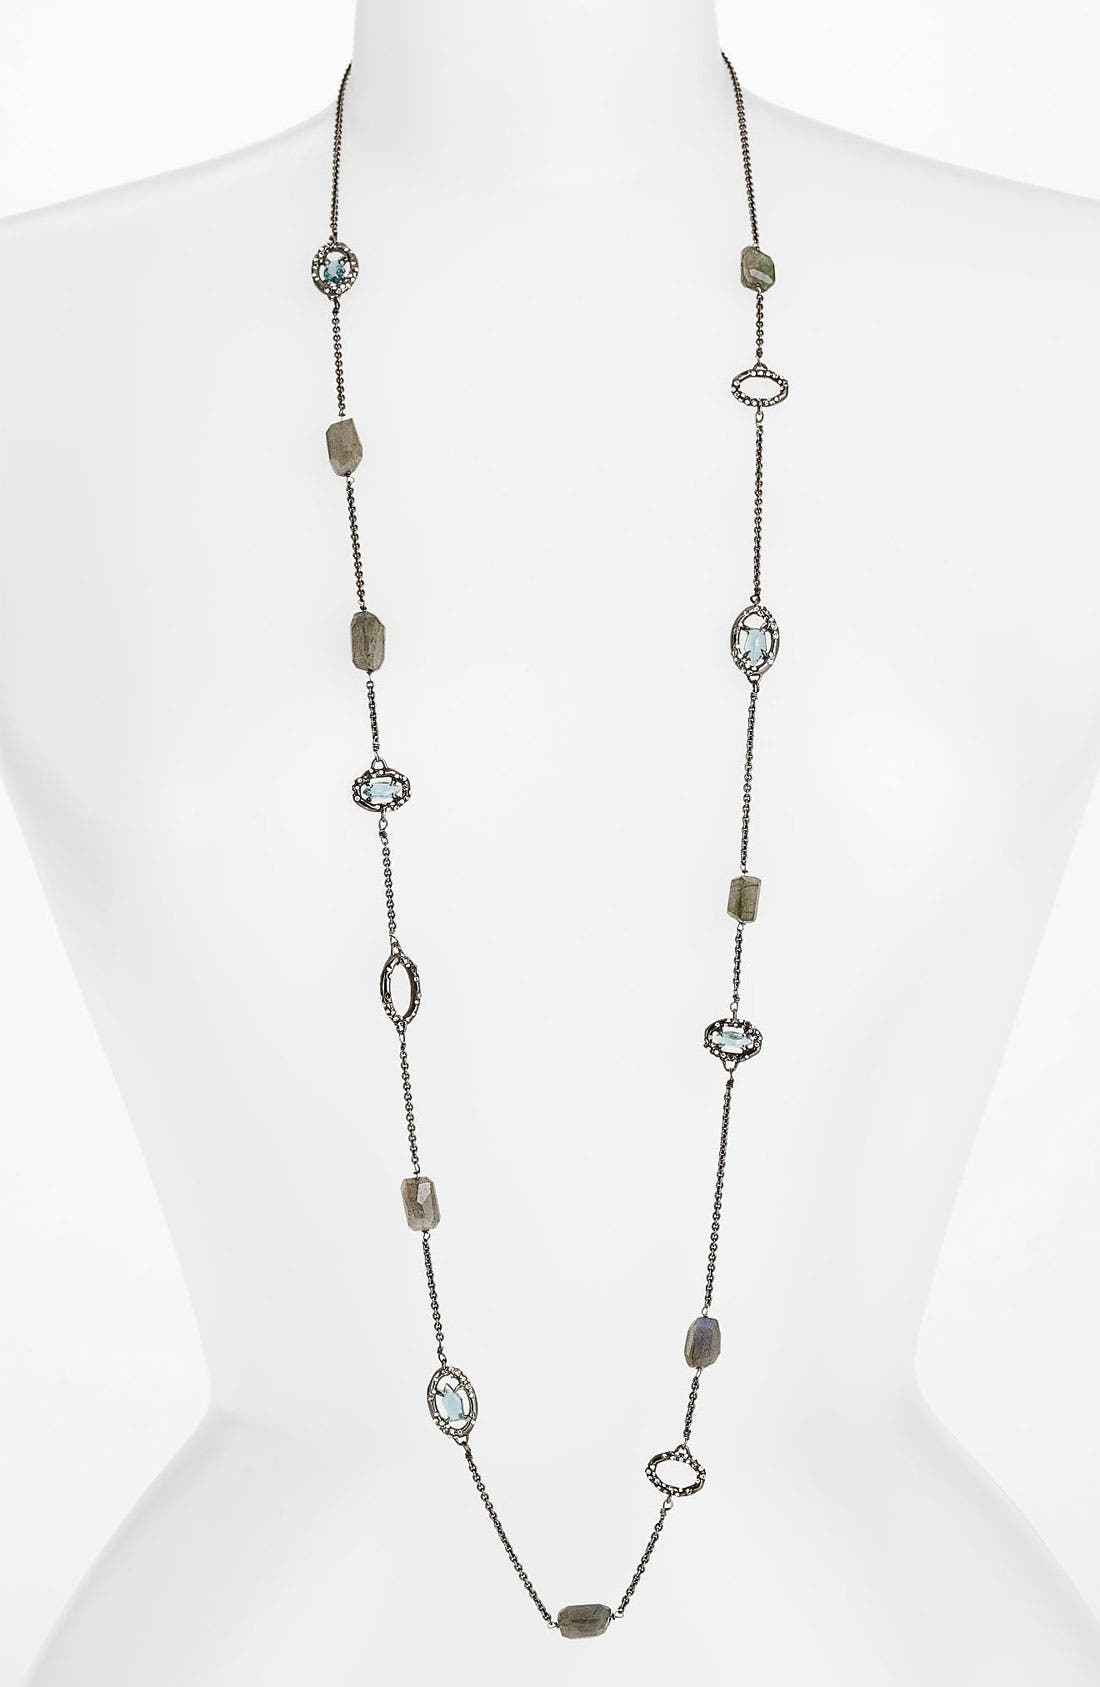 Alternate Image 1 Selected - Alexis Bittar 'Miss Havisham - Deco' Long Station Necklace (Nordstrom Exclusive)